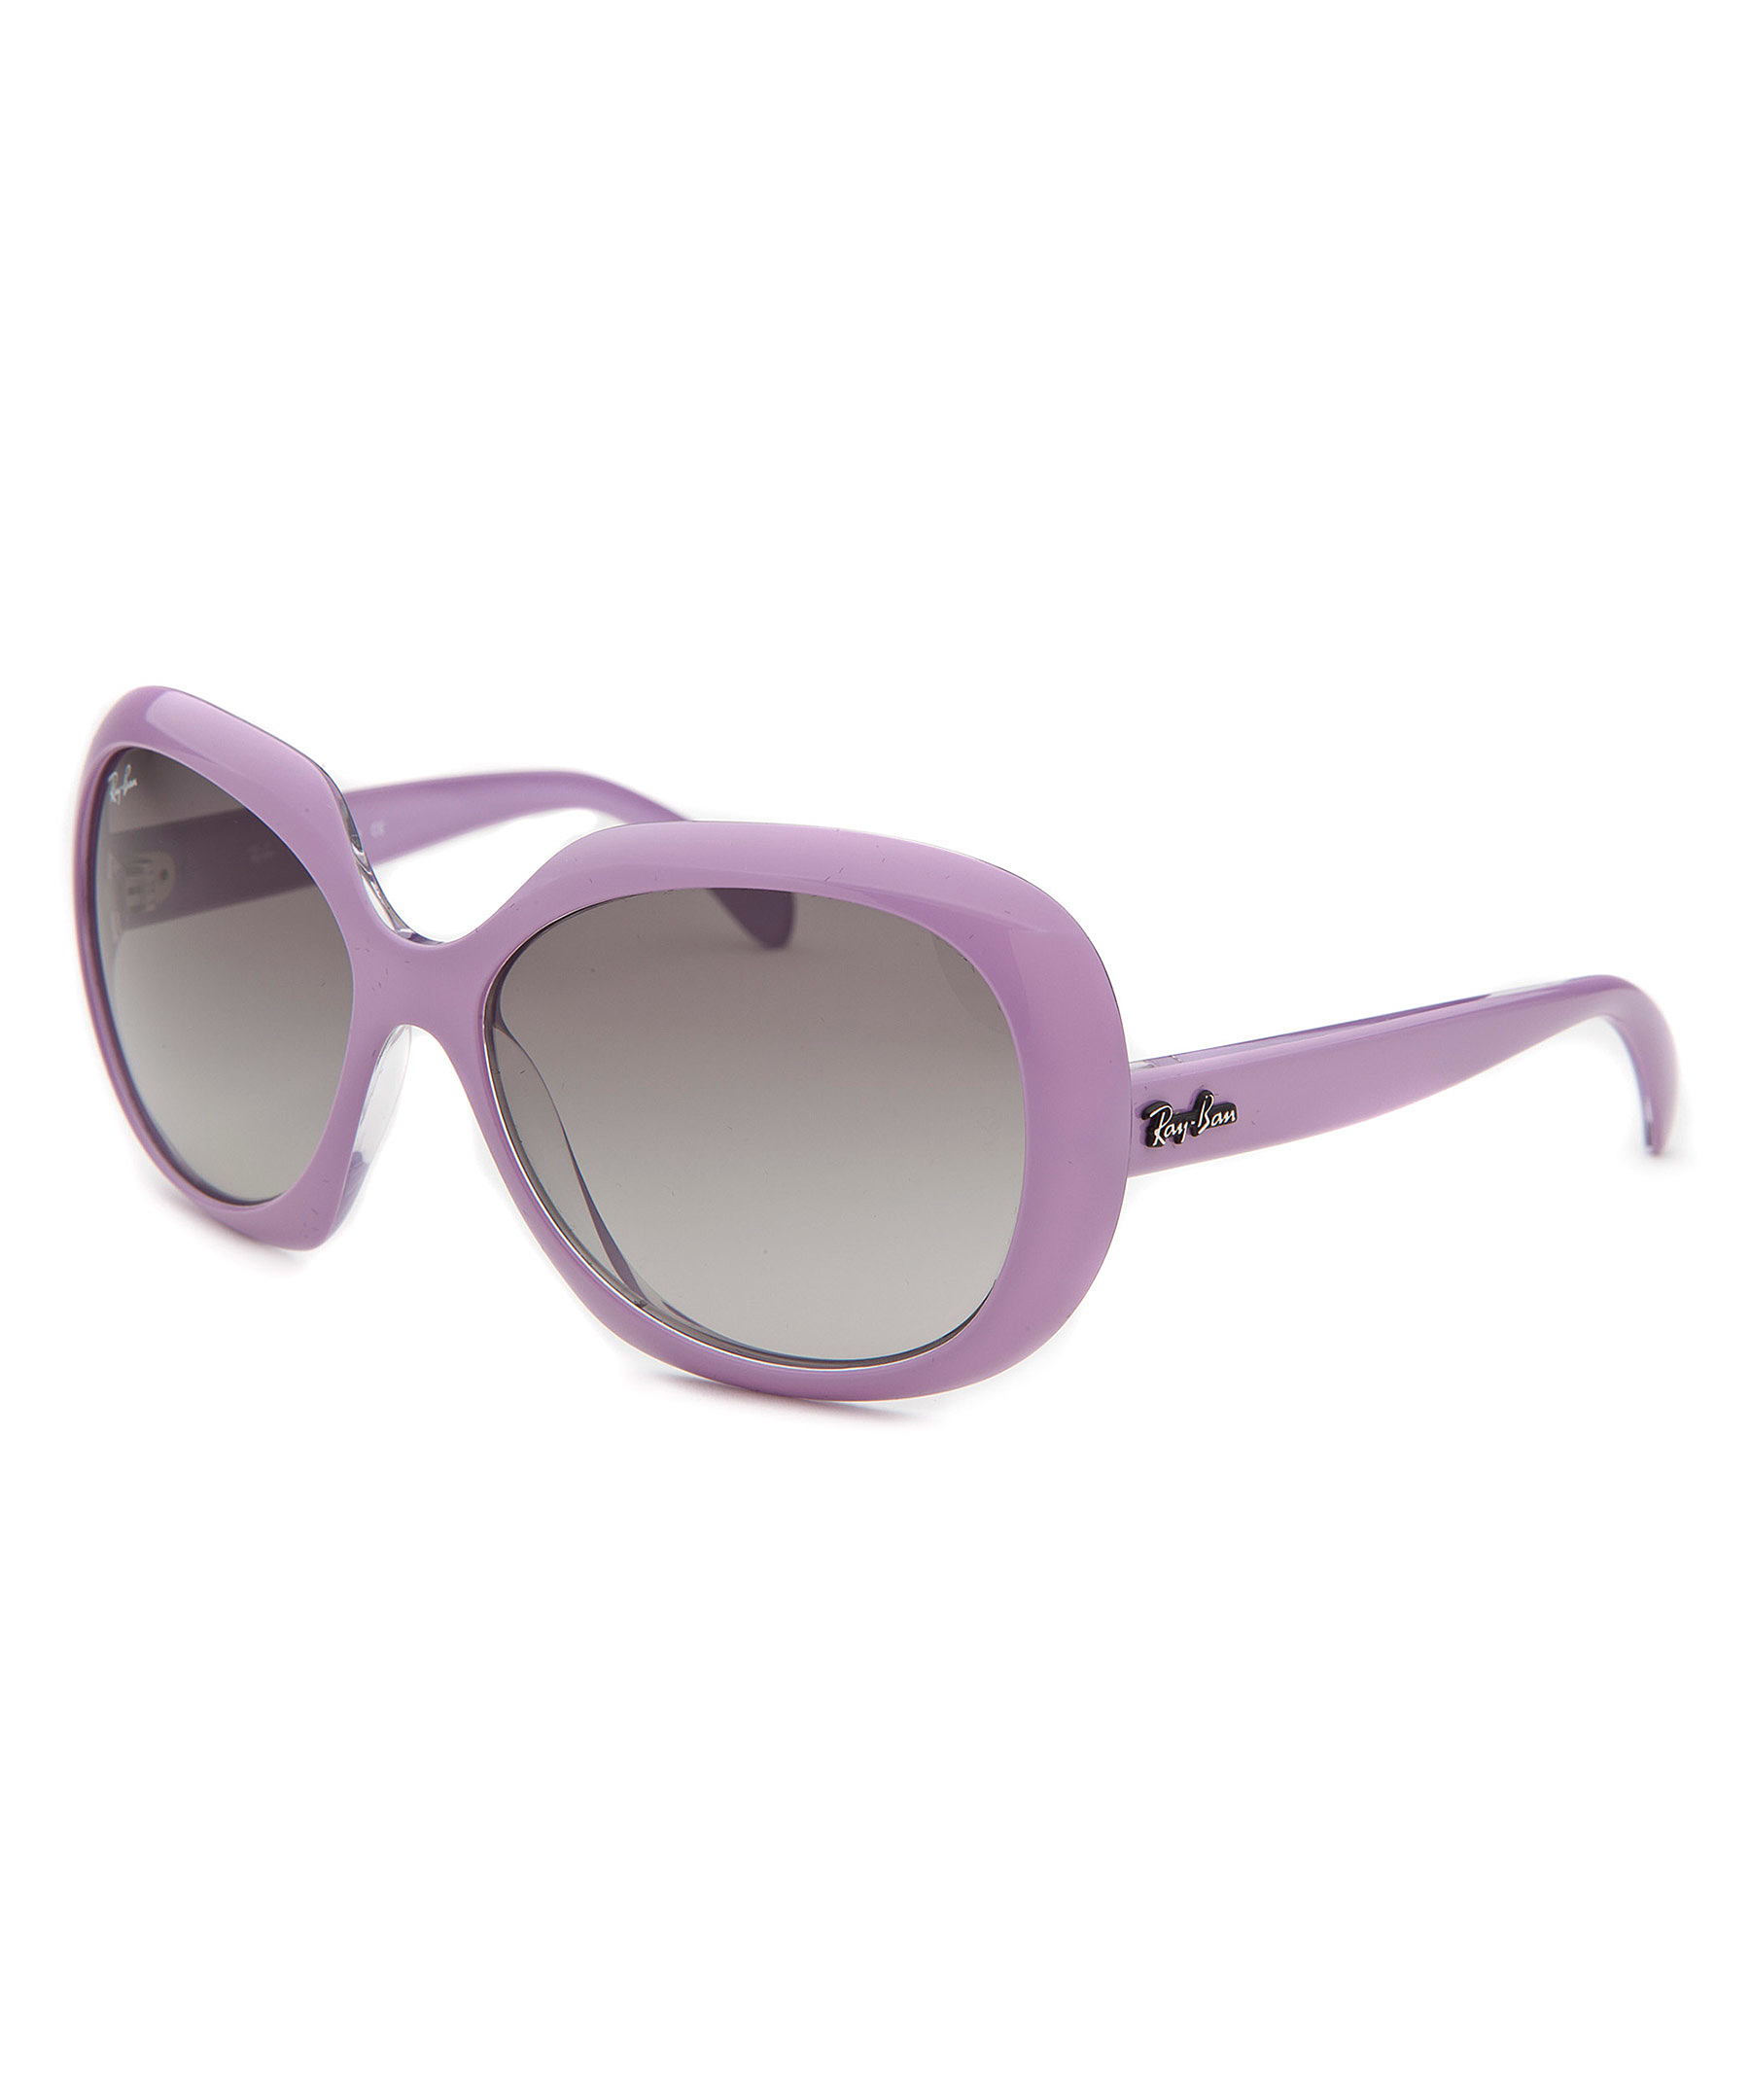 fee1c266f9 Ray Ban Pink Aviators Women « Heritage Malta